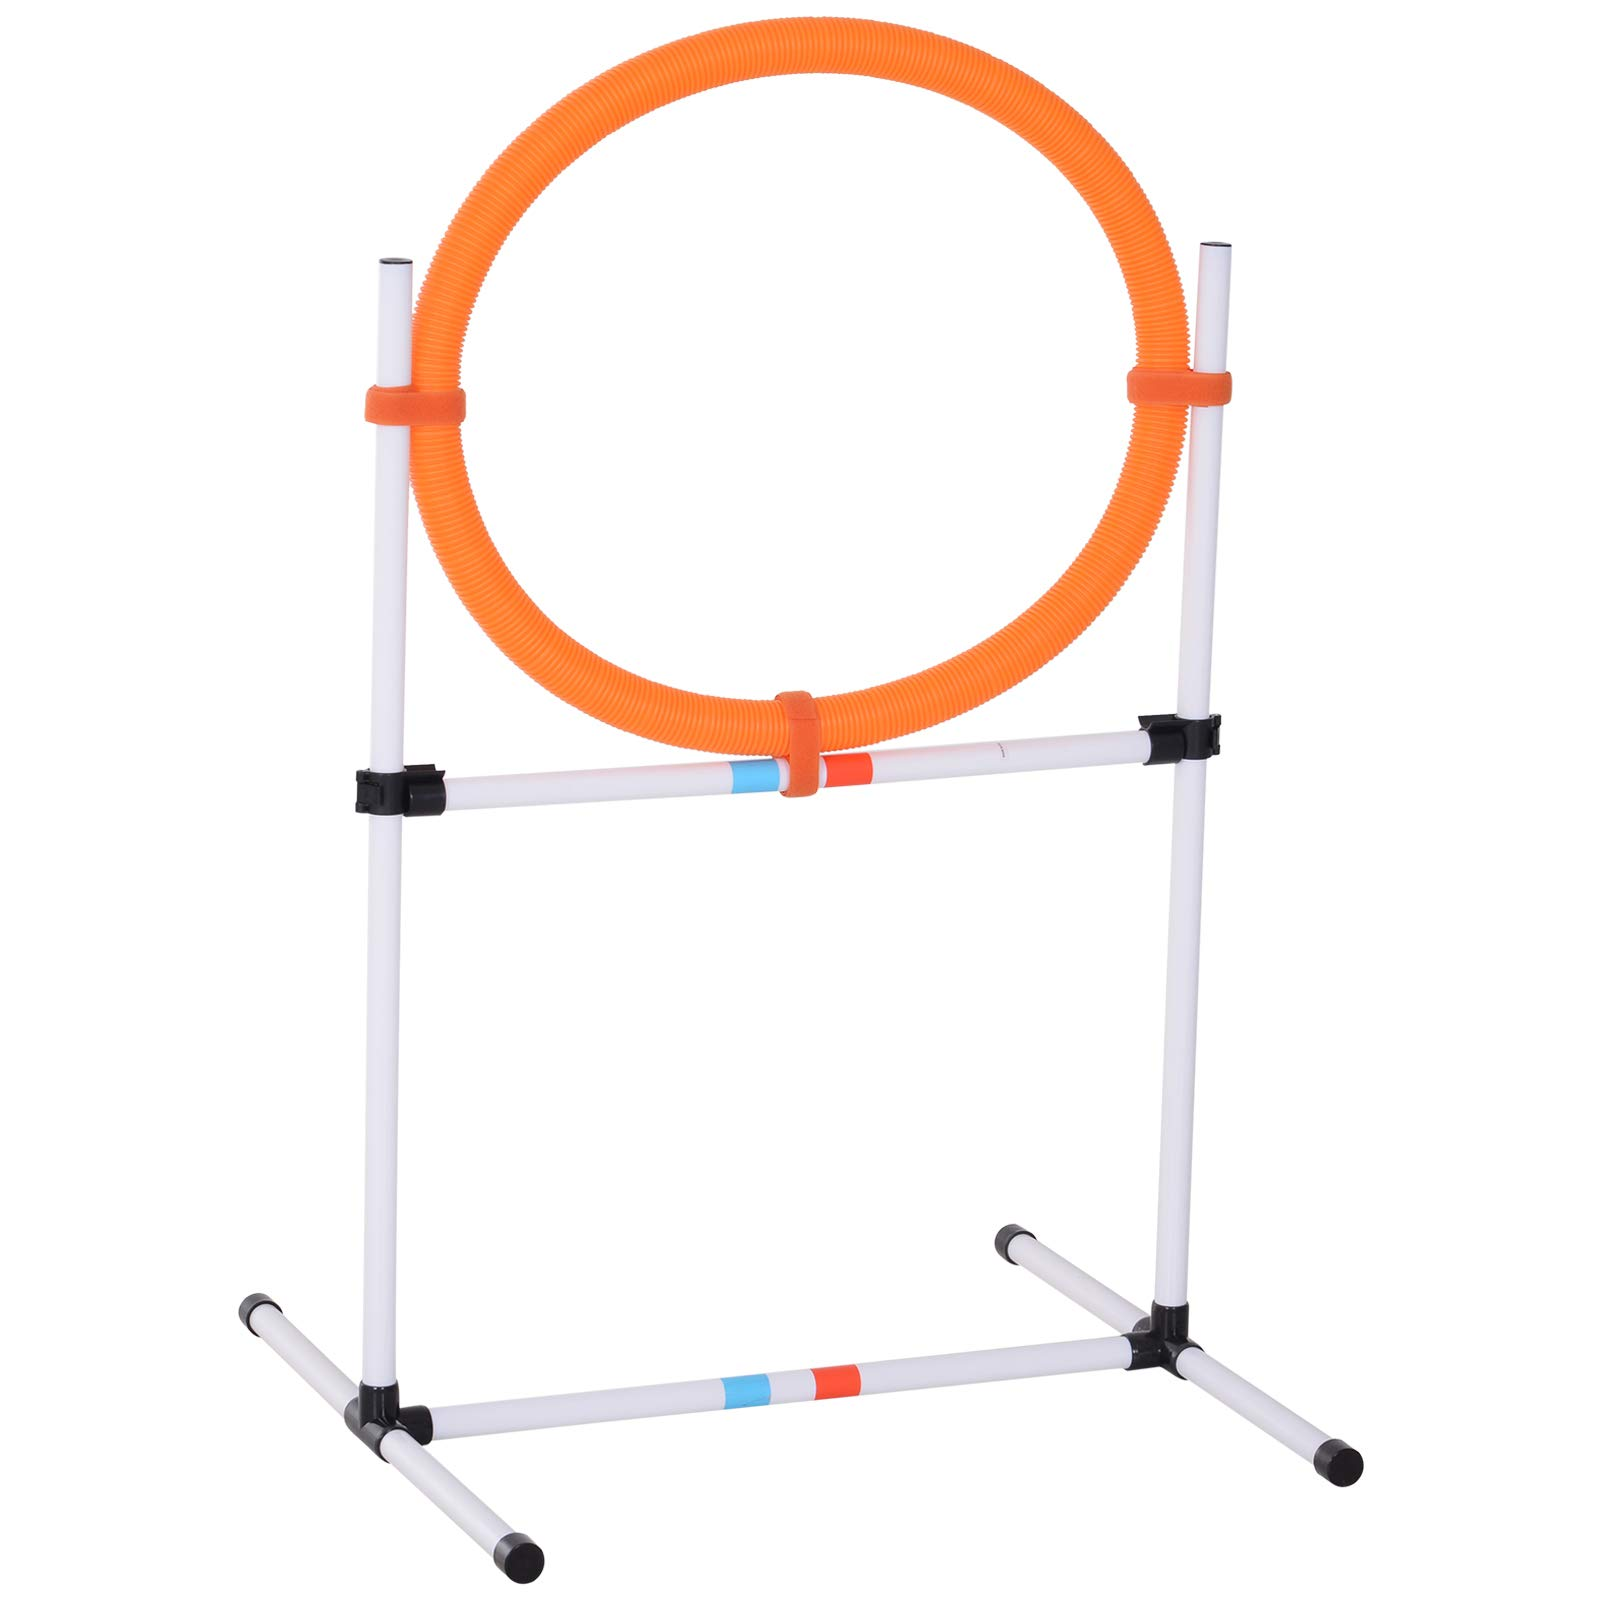 PawHut 2-in-1 Dog Obstacle Training Agility Equipment Tire Jump Ring/Hurdle Bar by PawHut